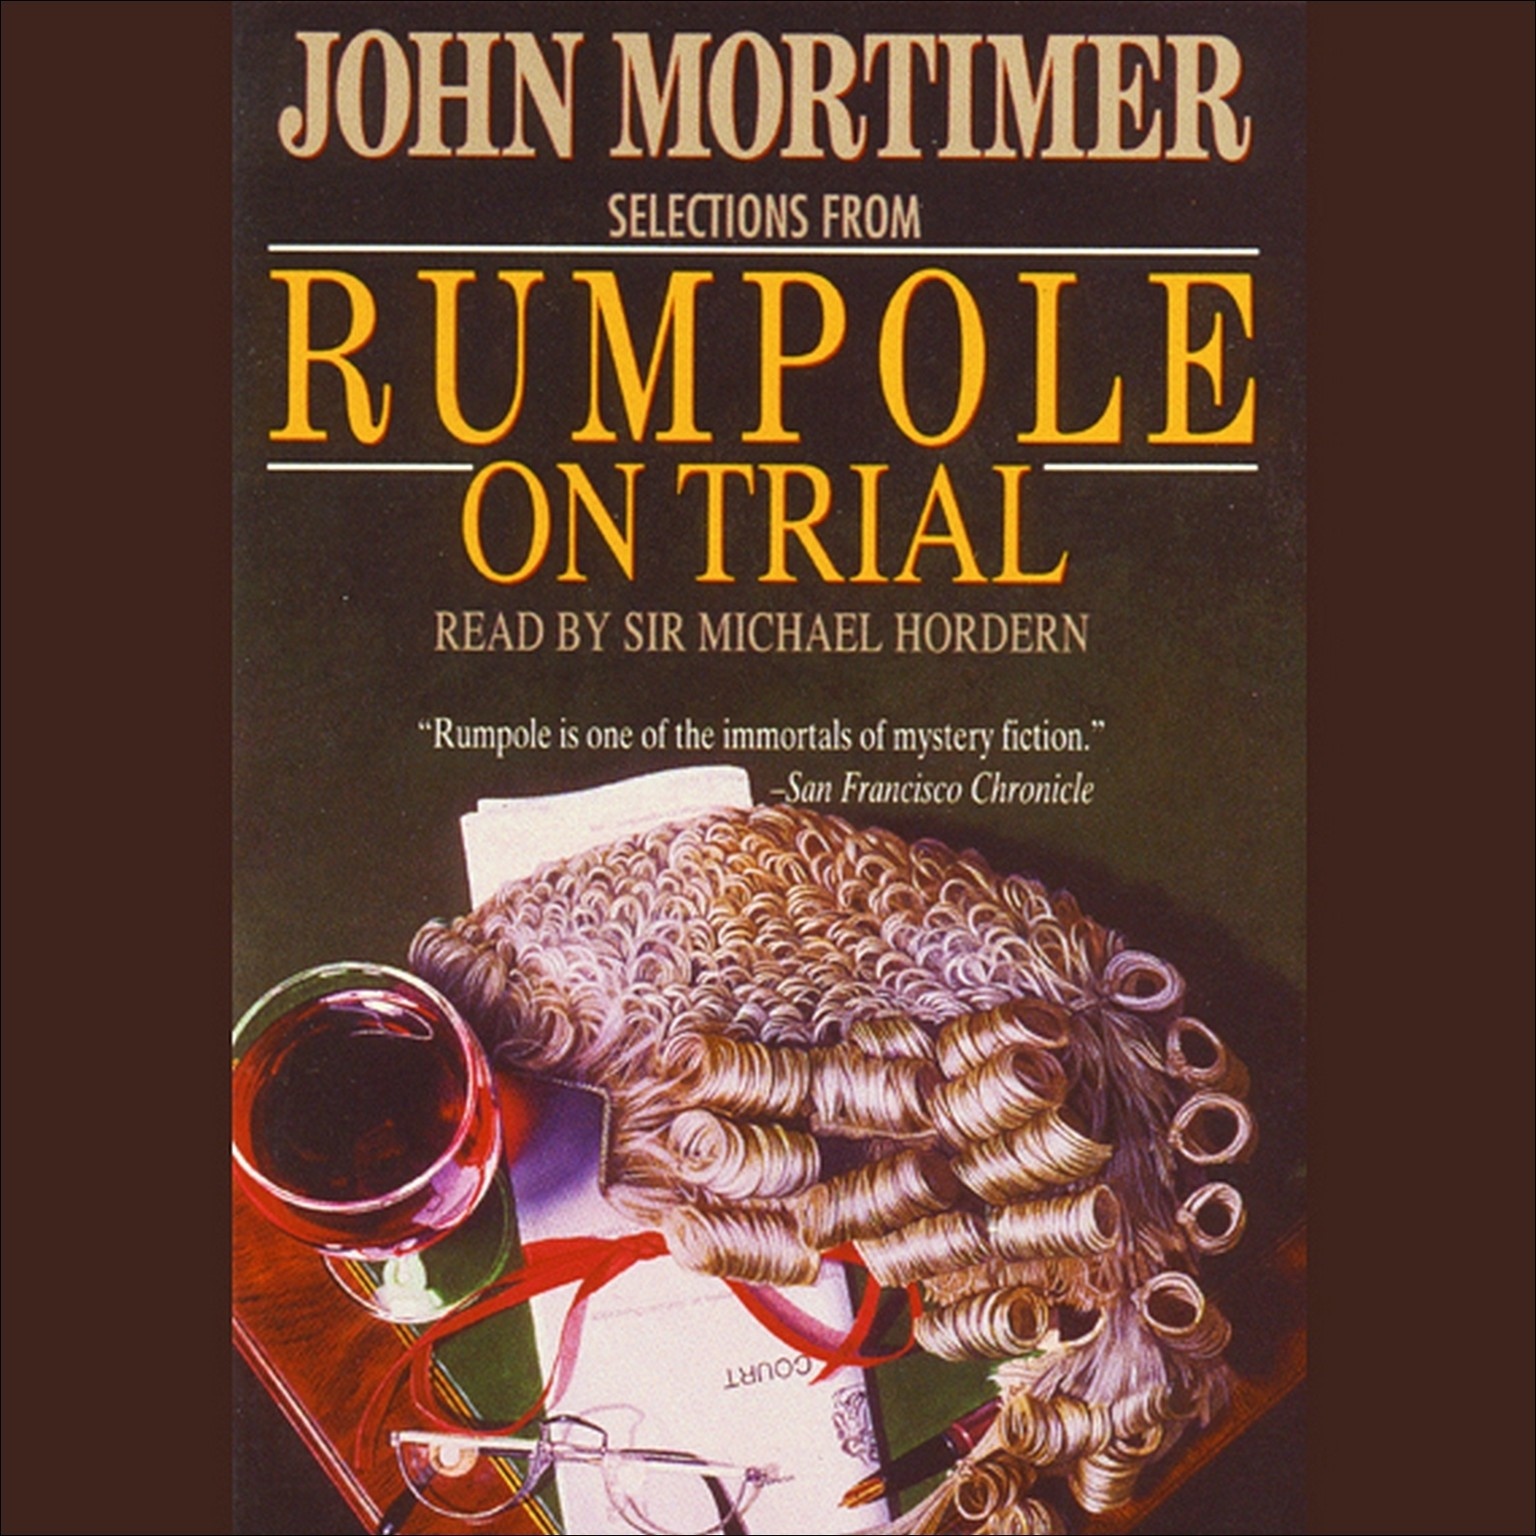 Printable Selections from Rumpole on Trial Audiobook Cover Art